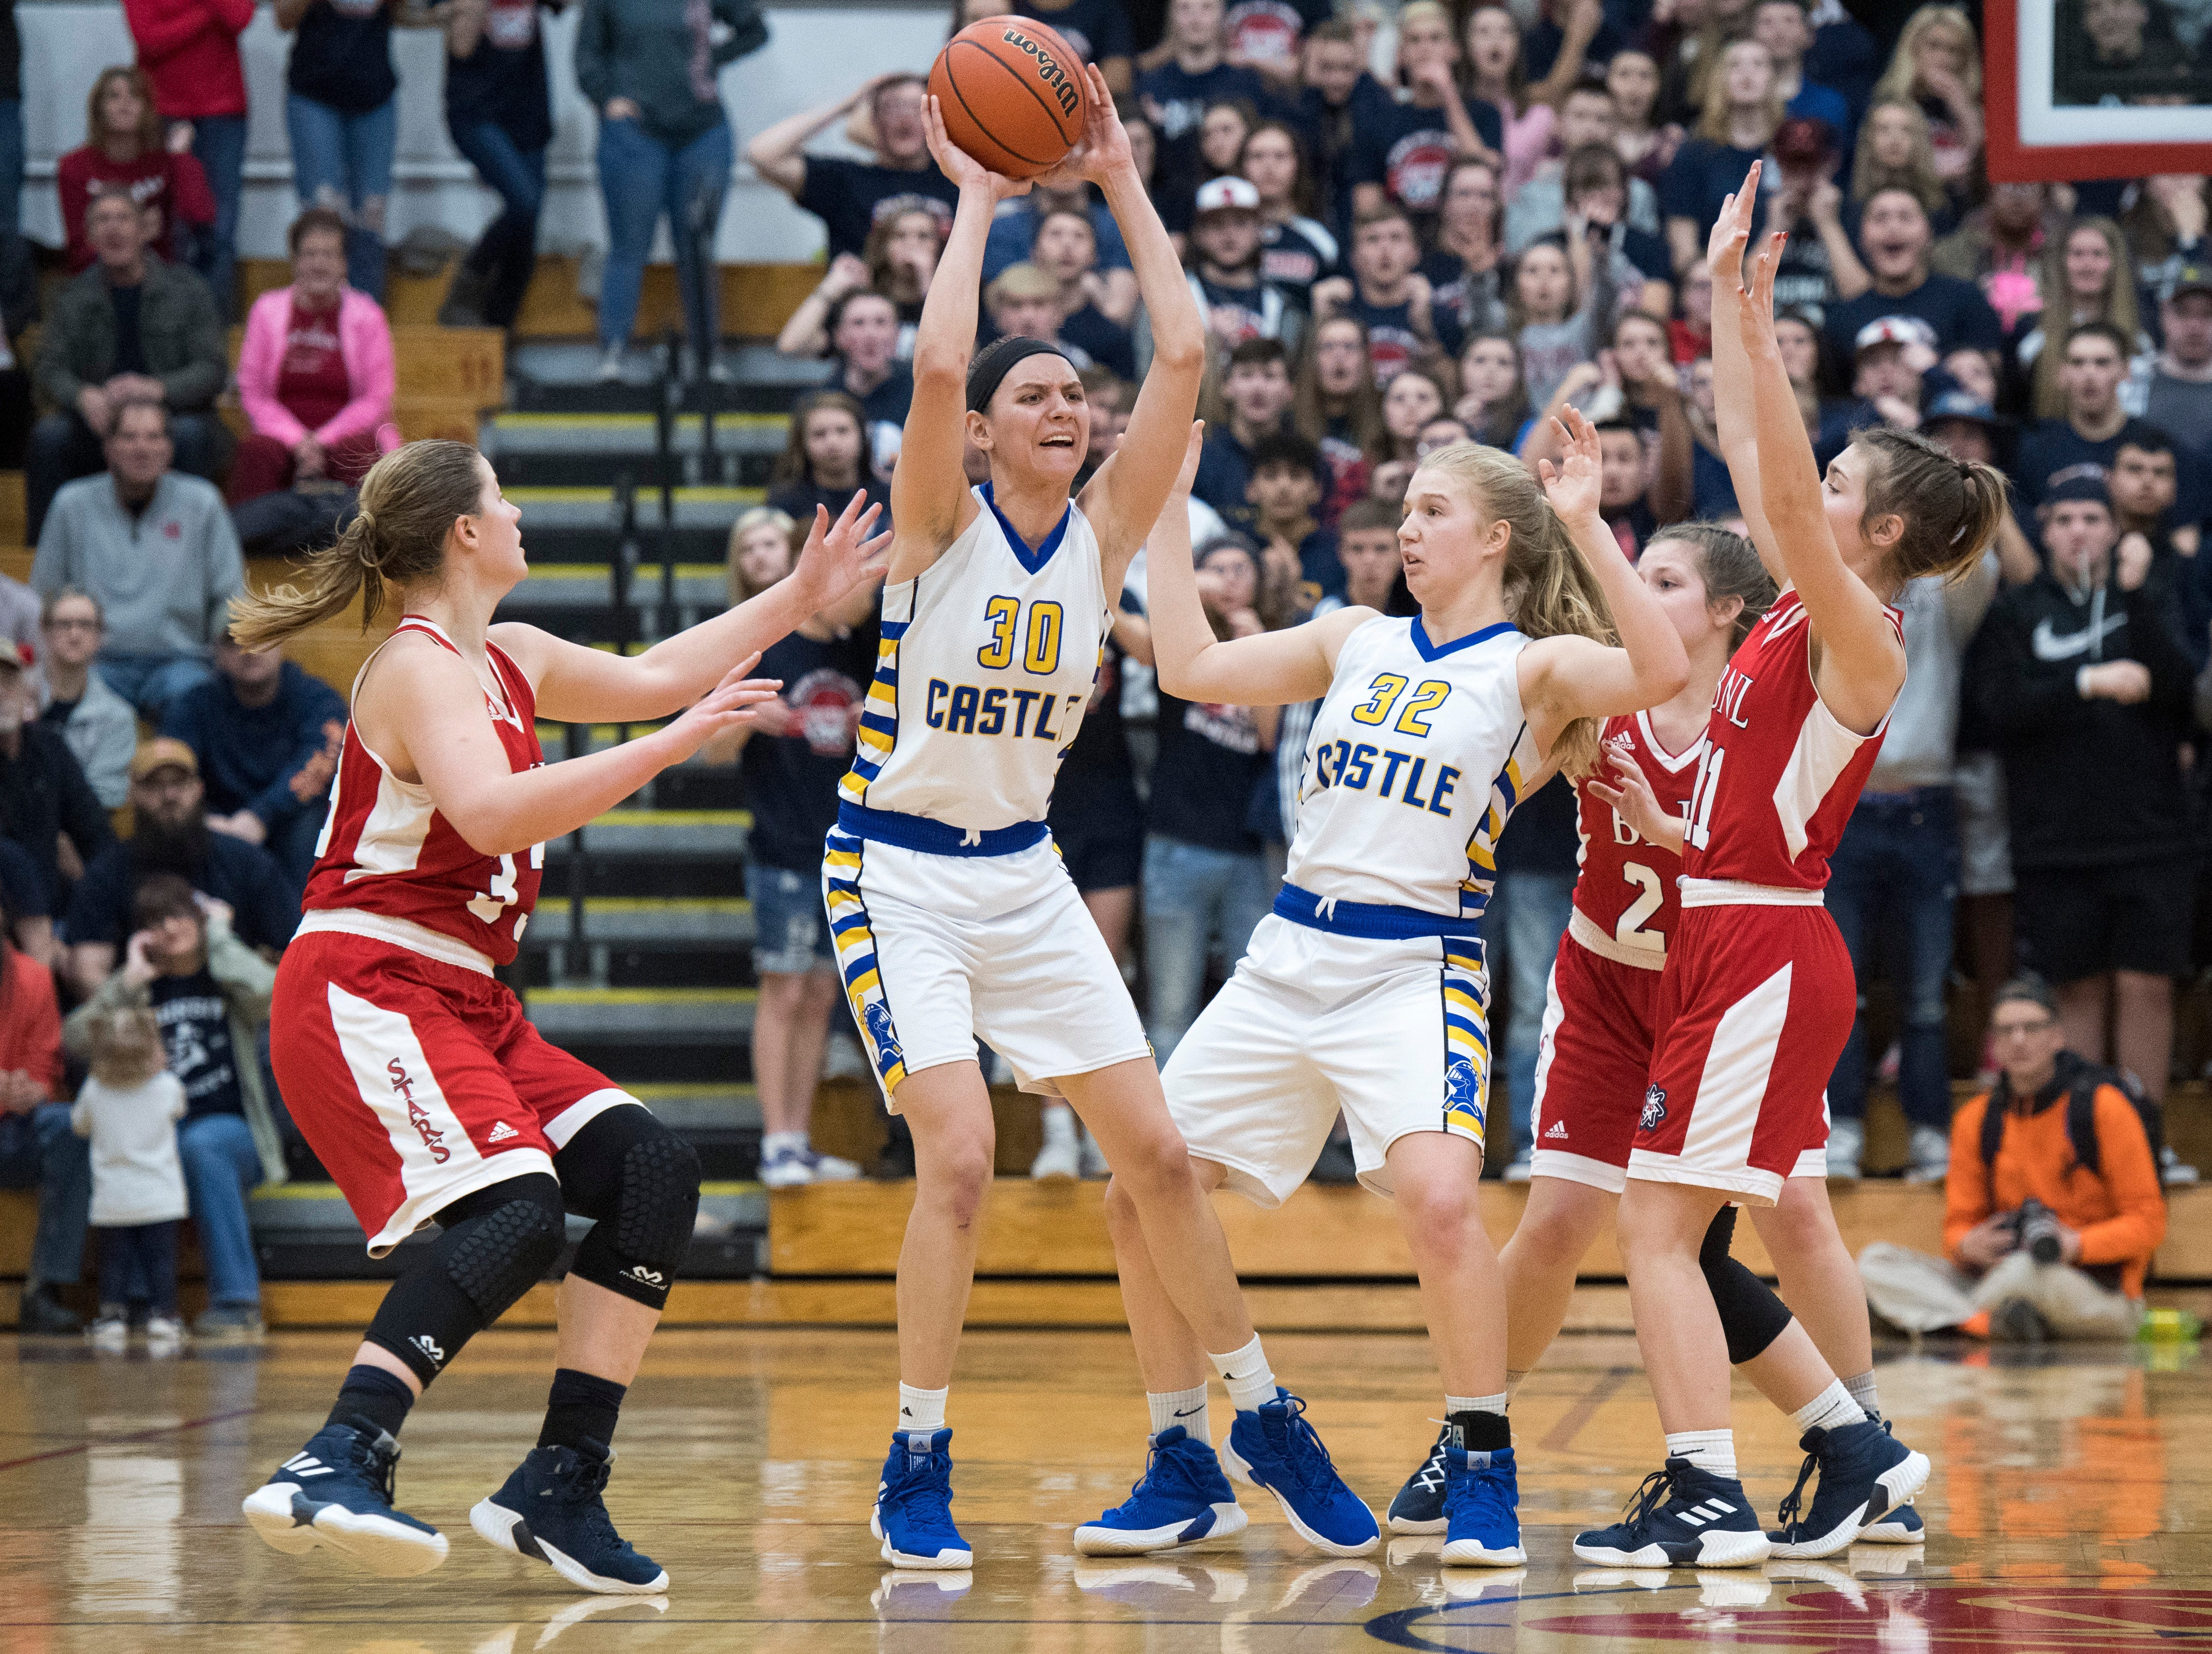 Castle's Jessica Nunge (30) passes the ball during the IIHSAA Girls Basketball Class 4A Regional Championship game against the Bedford North Lawrence Lady Stars at the Stars Field House in Bedford, Ind. Saturday, Feb. 9, 2019.